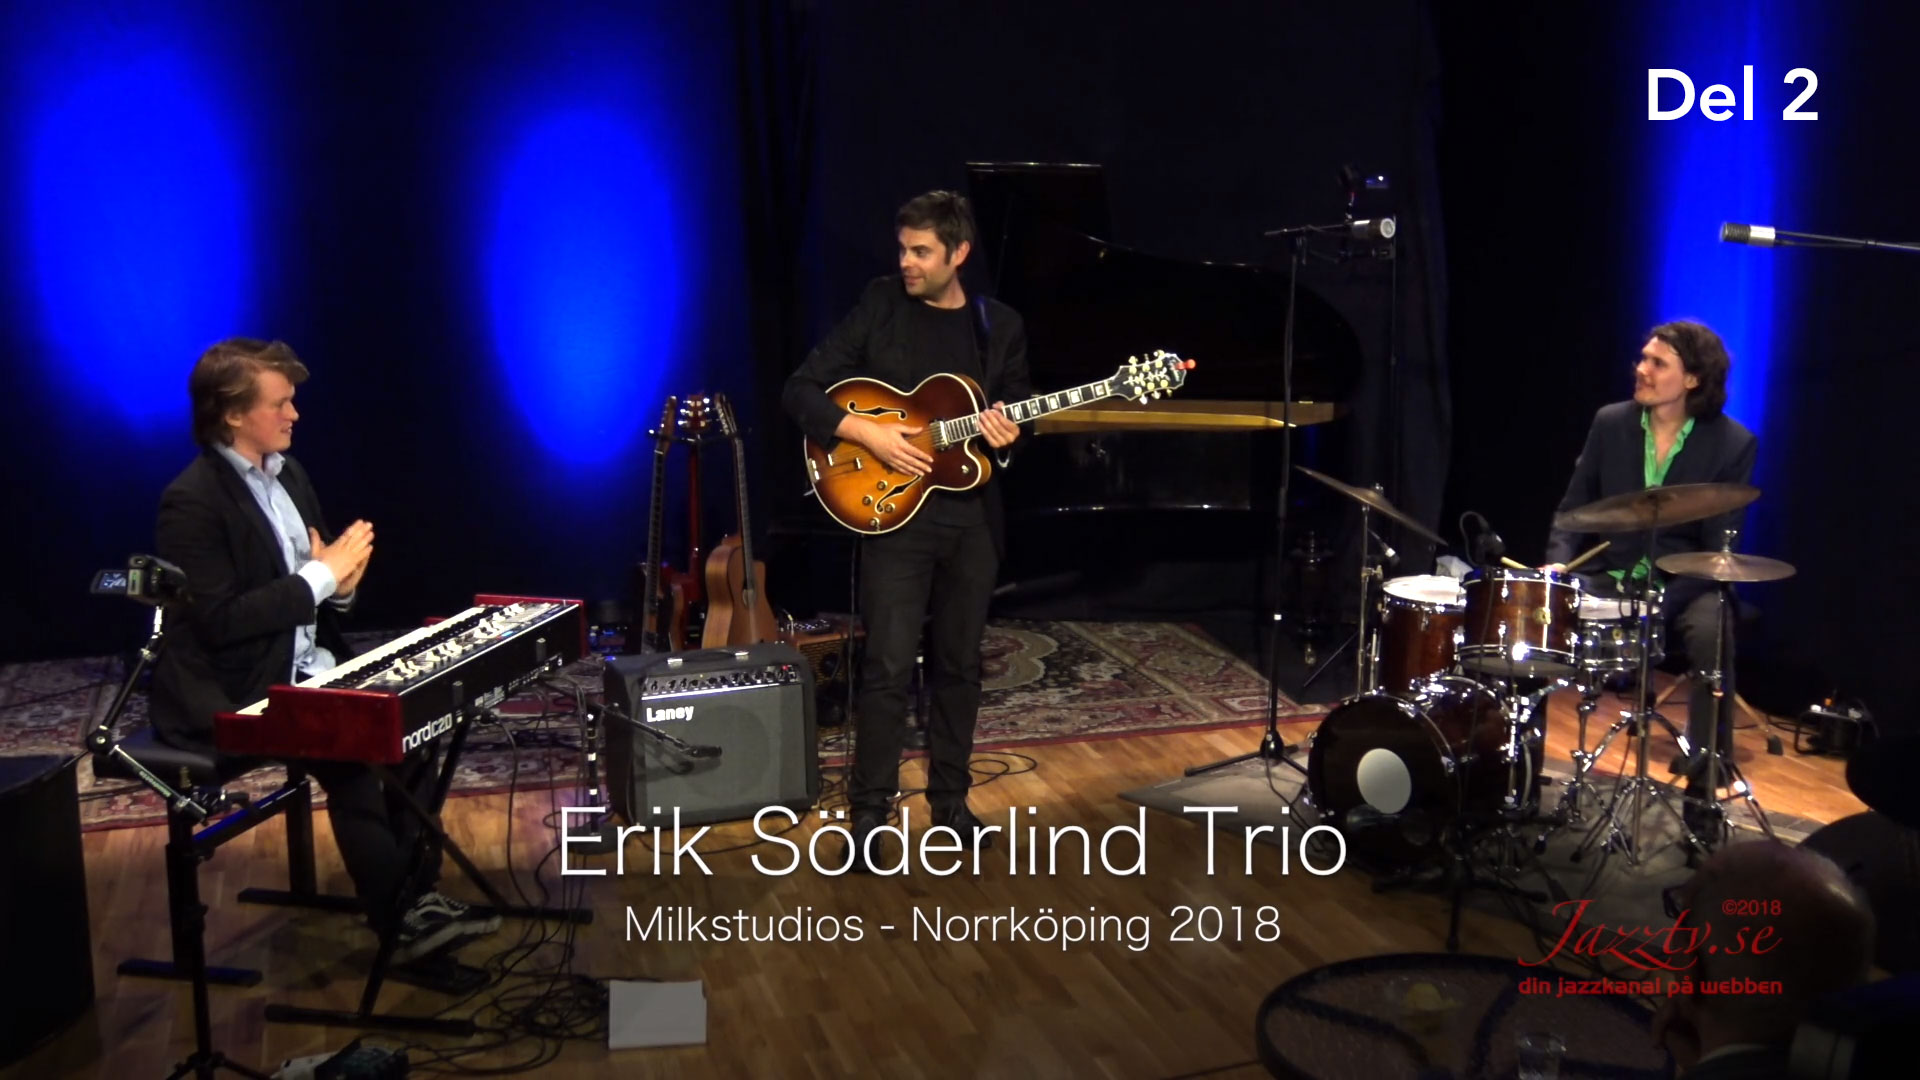 Erik Söderlind Trio